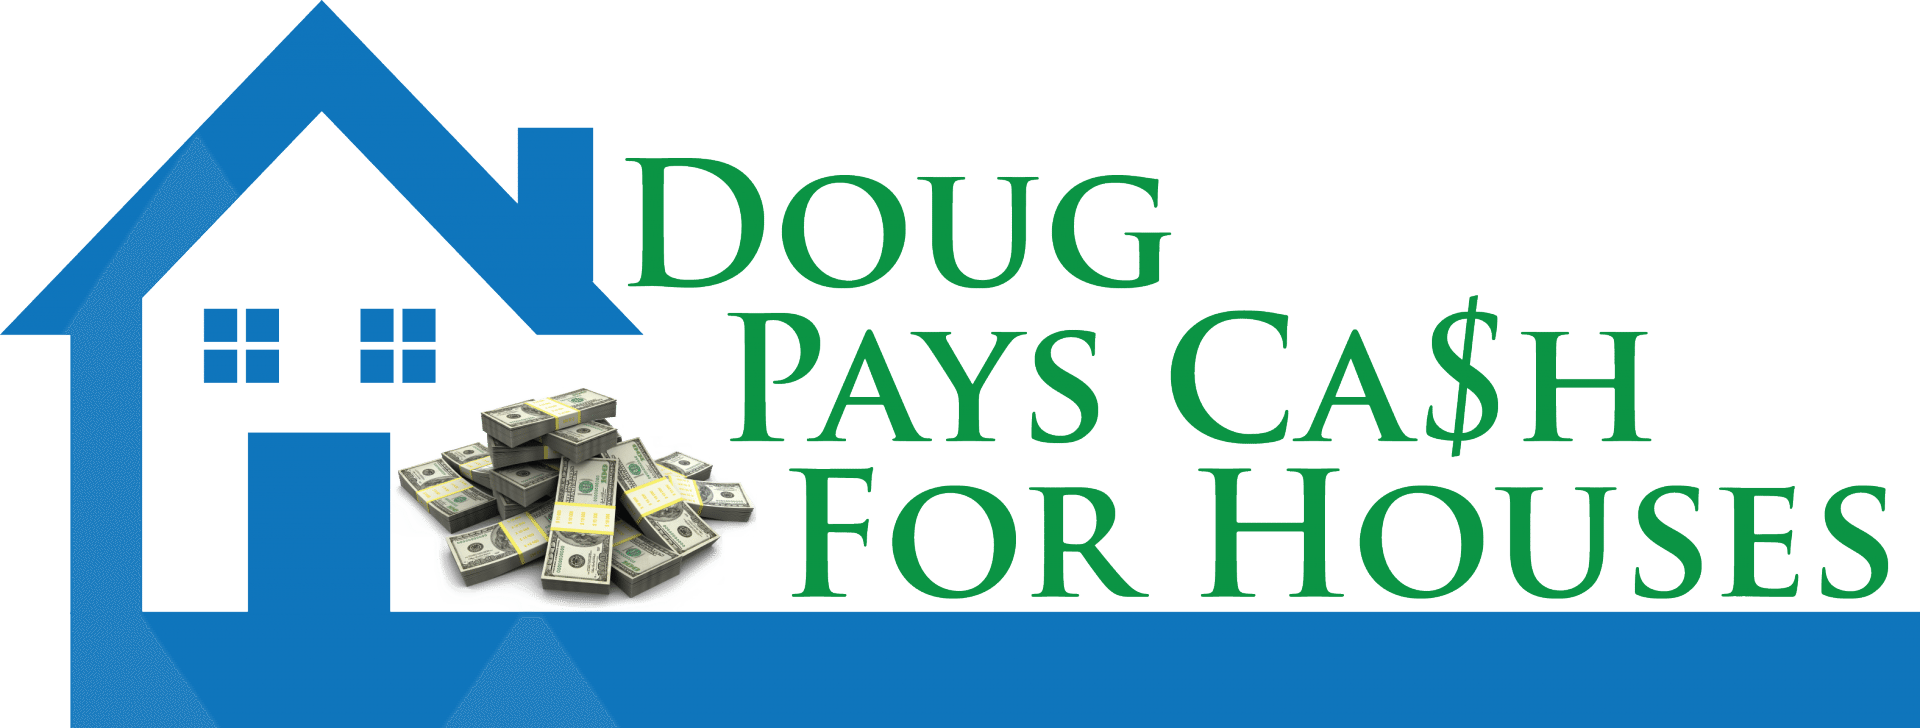 Doug Pays Cash For Houses